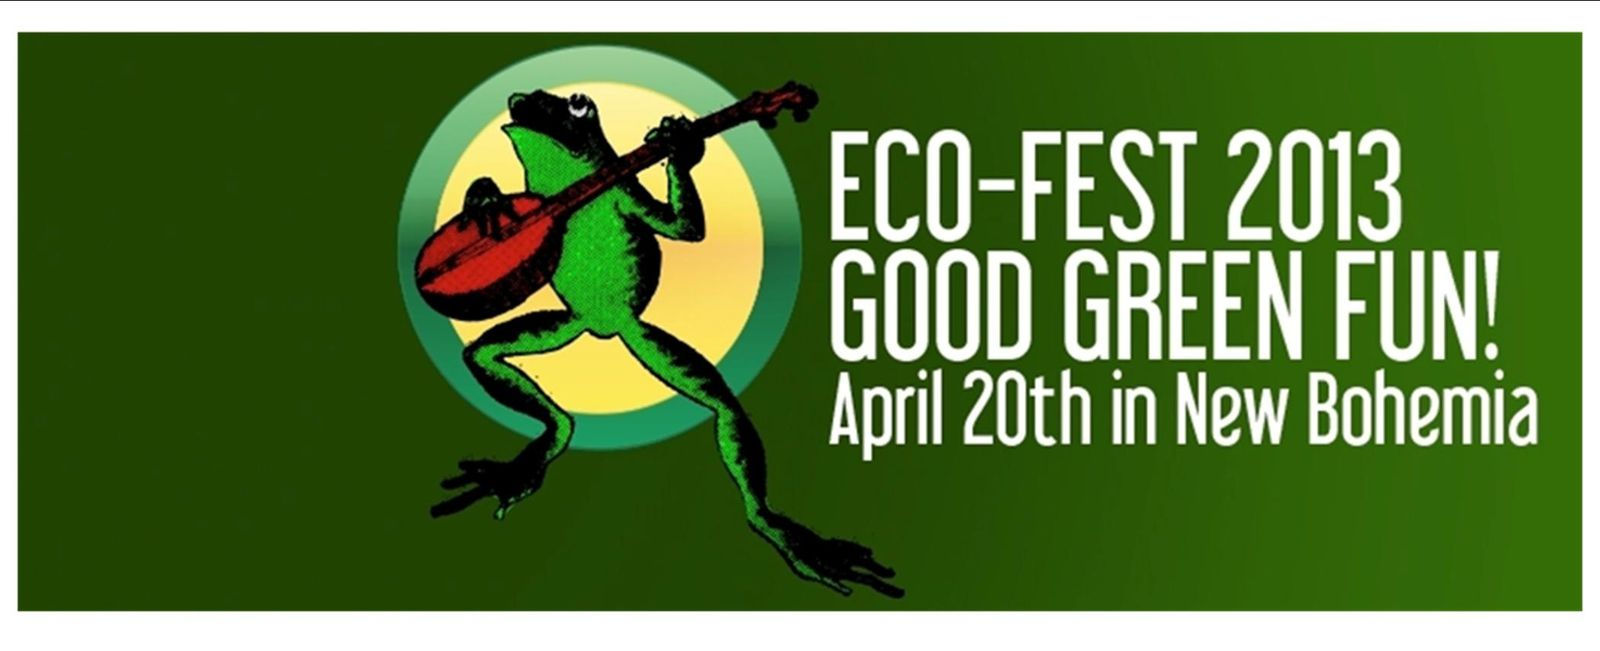 Visit Linn County ISU Extension & Homegrown Lifestyle at Eco-Fest 2013!